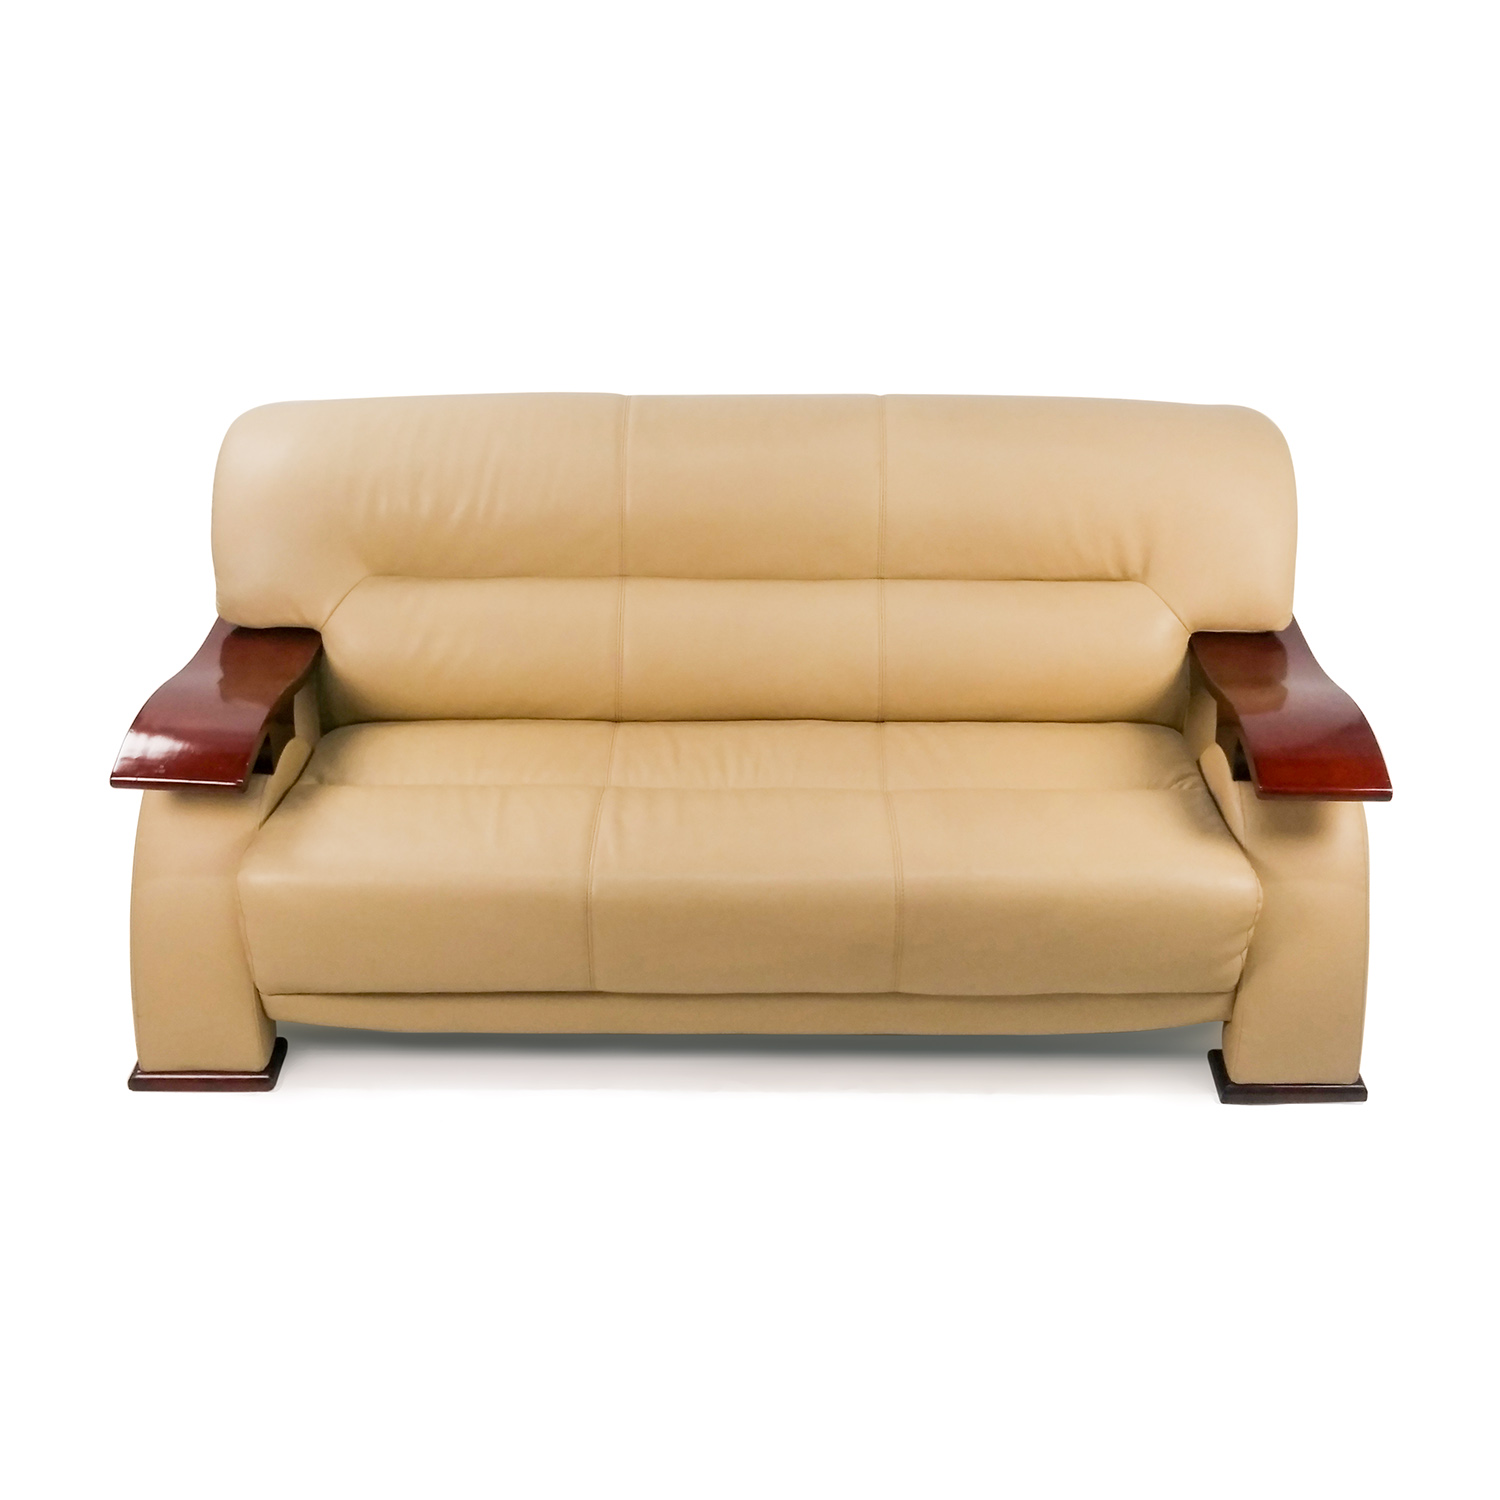 ... Unknown Brand Contemporary Beige Leather Sofa With Wood Arms Price ...